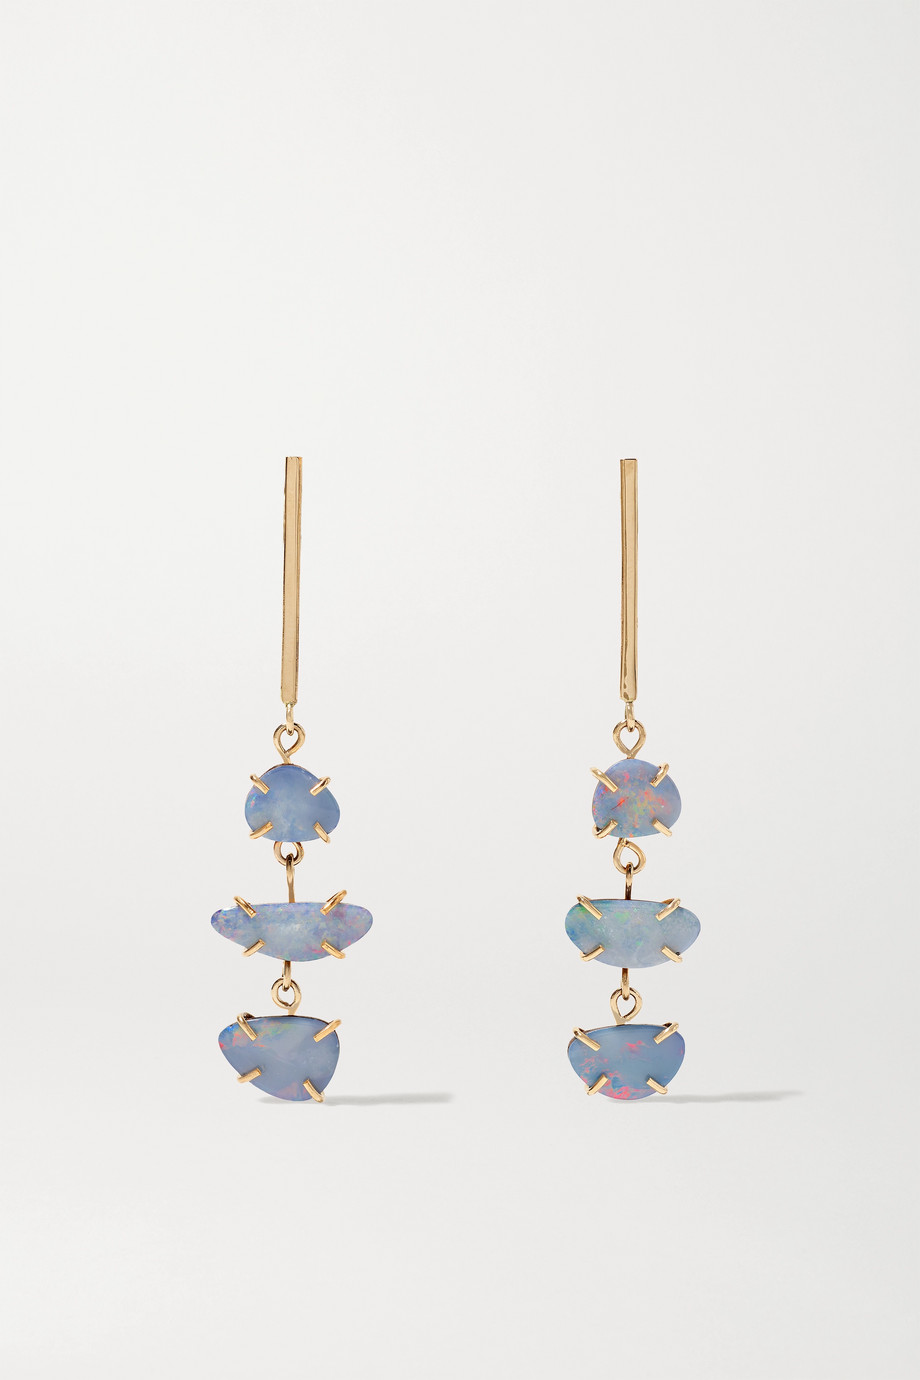 Melissa Joy Manning 14-karat gold opal doublet earrings